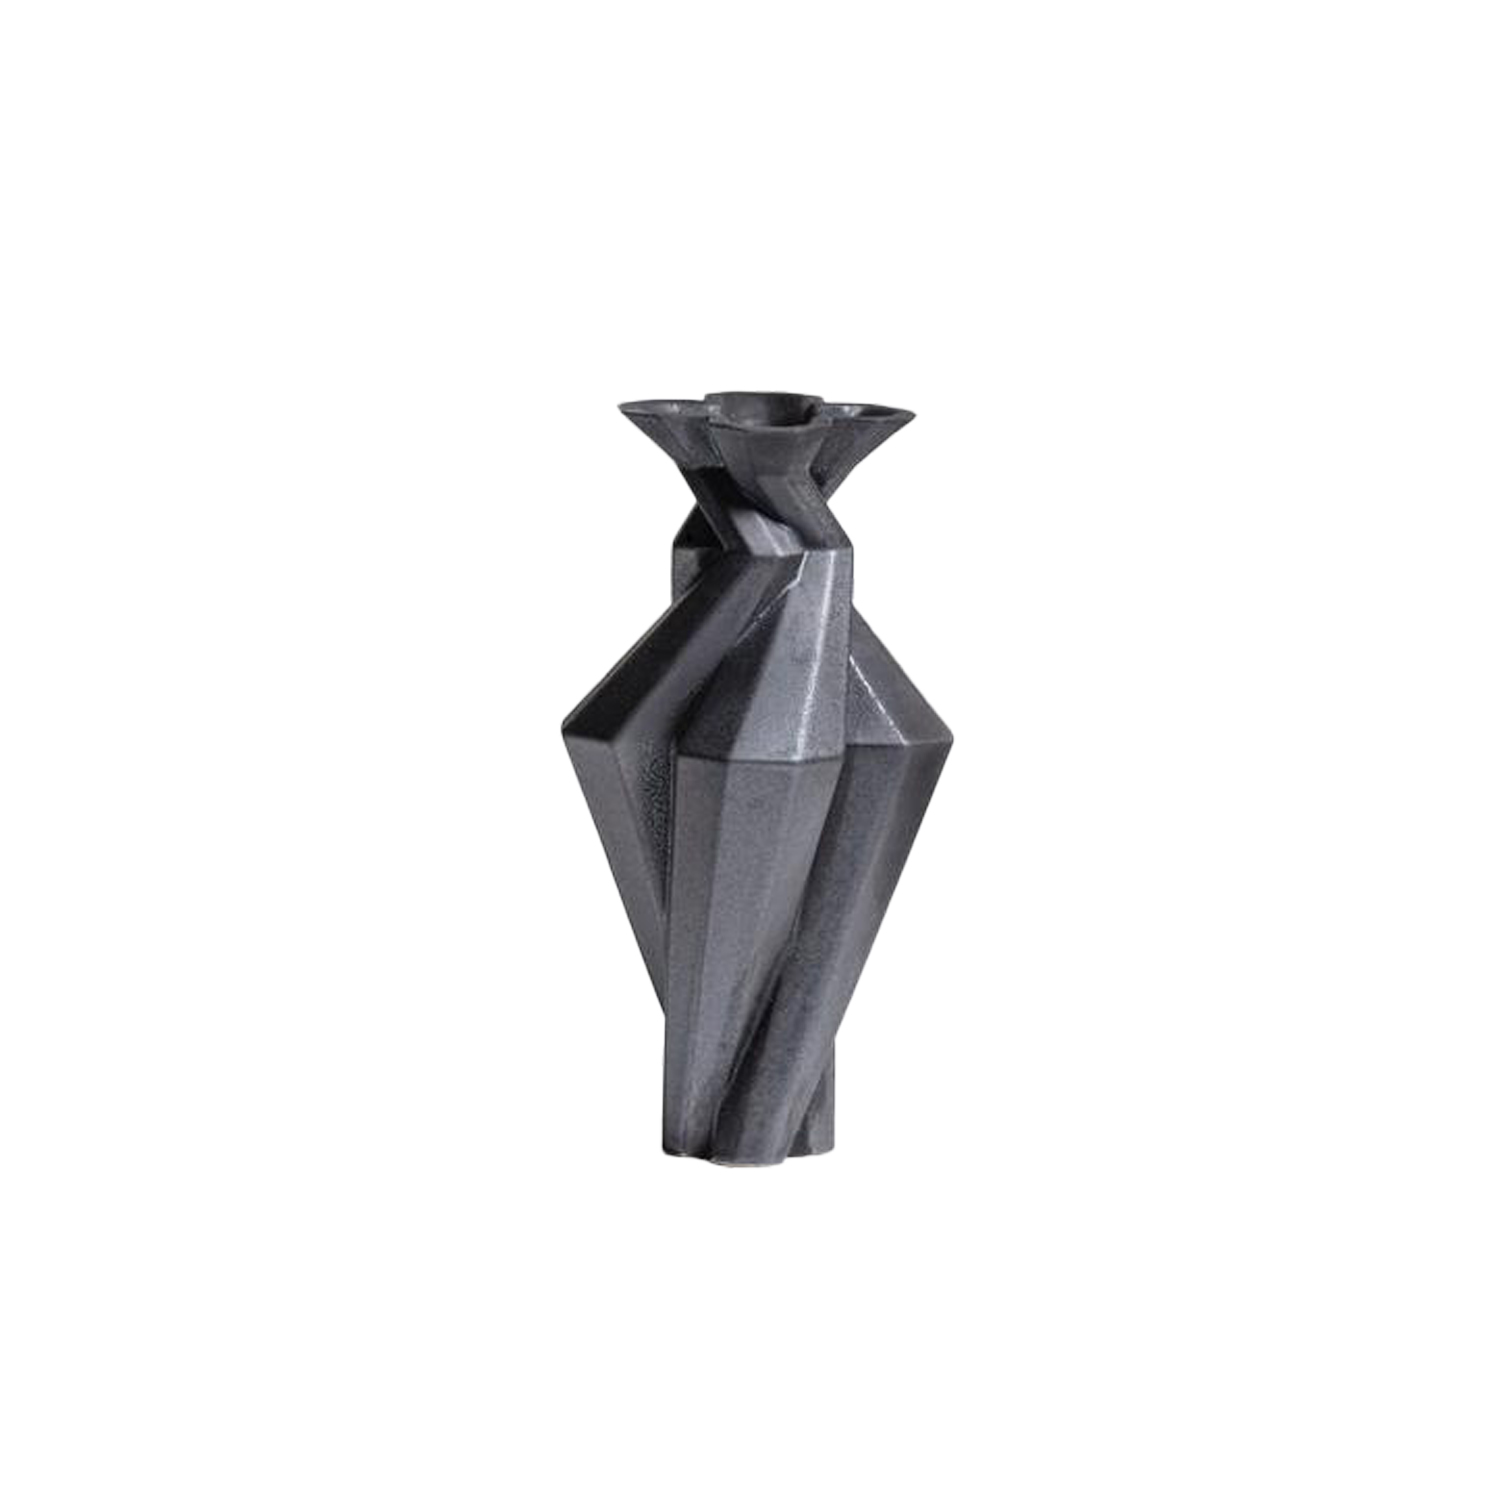 Fortress Spire Iron - Designer Lara Bohinc explores the marriage of ancient and futuristic form in the new Fortress Vase range, which has created a more complex geometric and modern structure from the original inspiration of the octagonal towers at the Diocletian Palace in Croatia. The resulting hexagonal blocks interlock and embrace to allow the play of light and shade on the many surfaces and angles. There are four Fortress shapes: the larger Column and Castle (45cm height), the Pillar (30cm height) and the Tower vase (37cm height). These are hand made from ceramic in a small Italian artisanal workshop and come in three finishes: dark gold, bronze and speckled white.  | Matter of Stuff